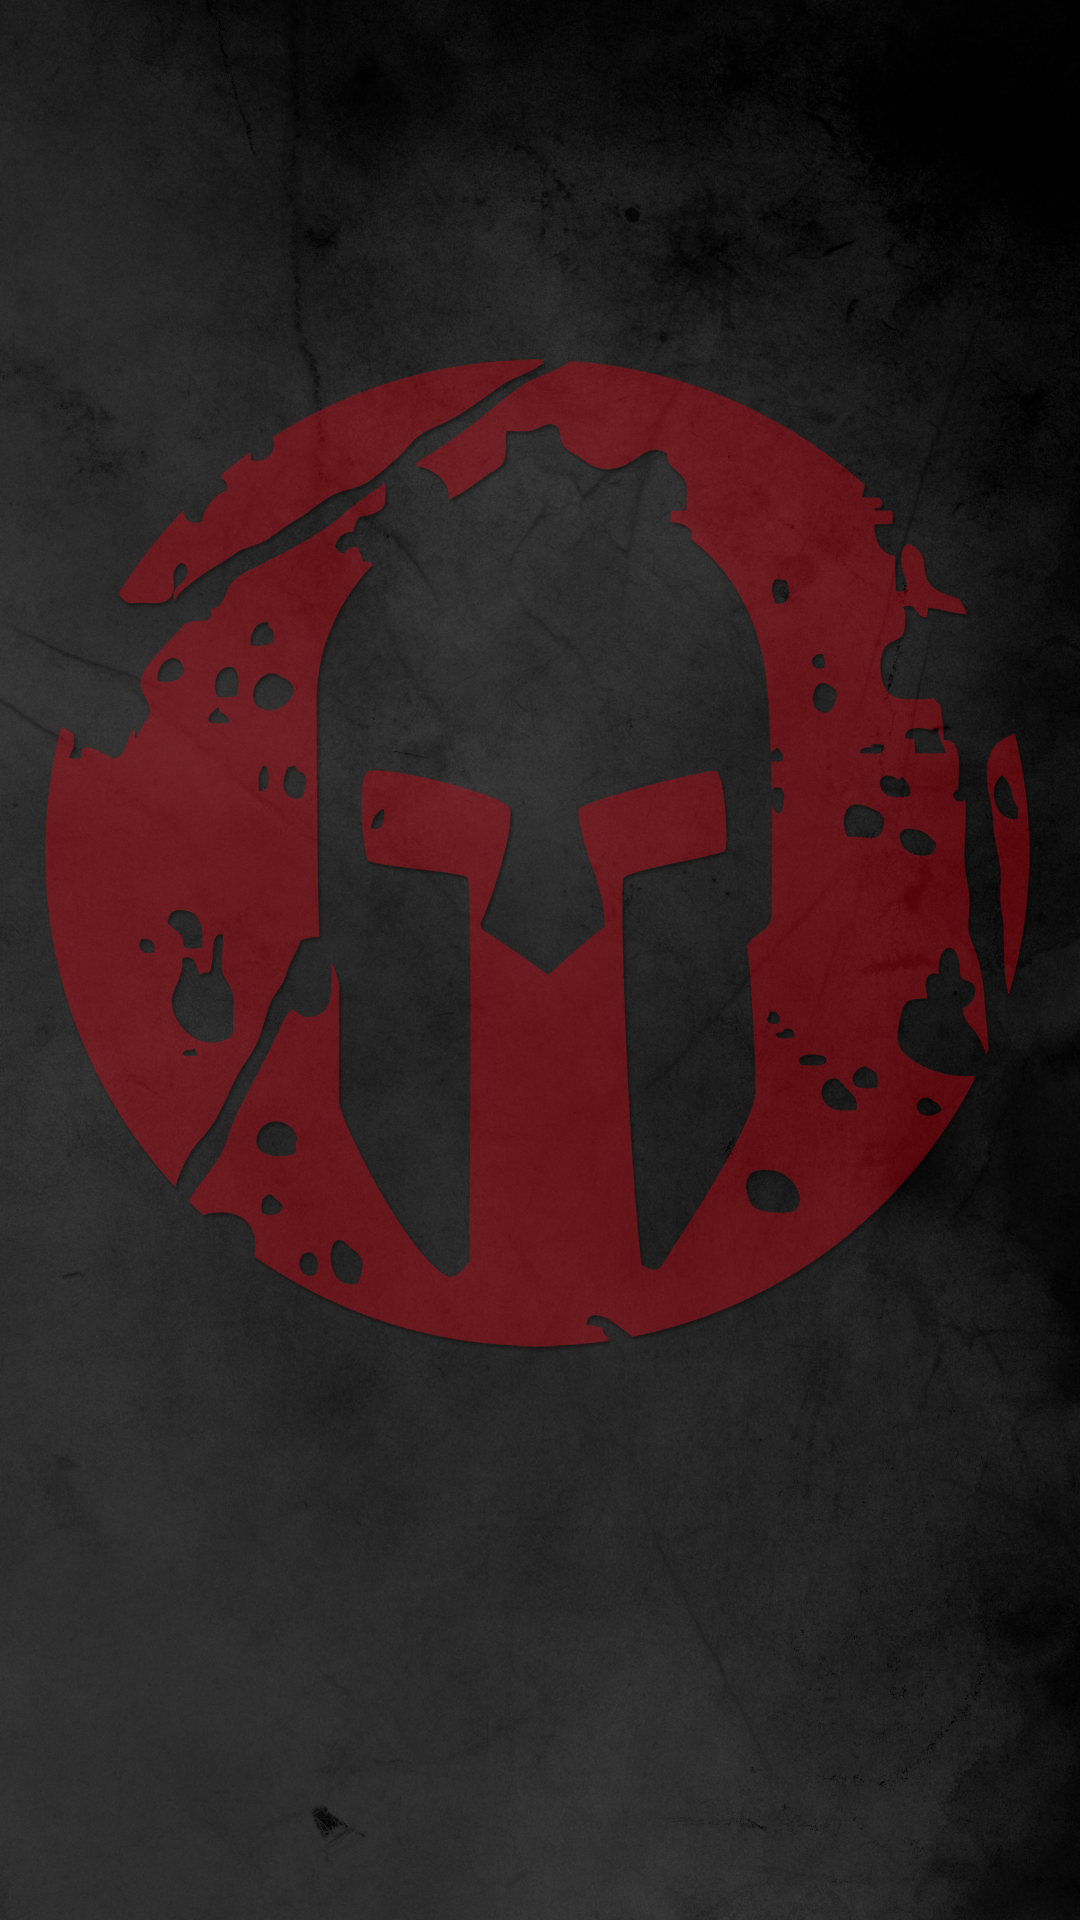 Spartan Race Logo Png Spartan Race Wallpaper...